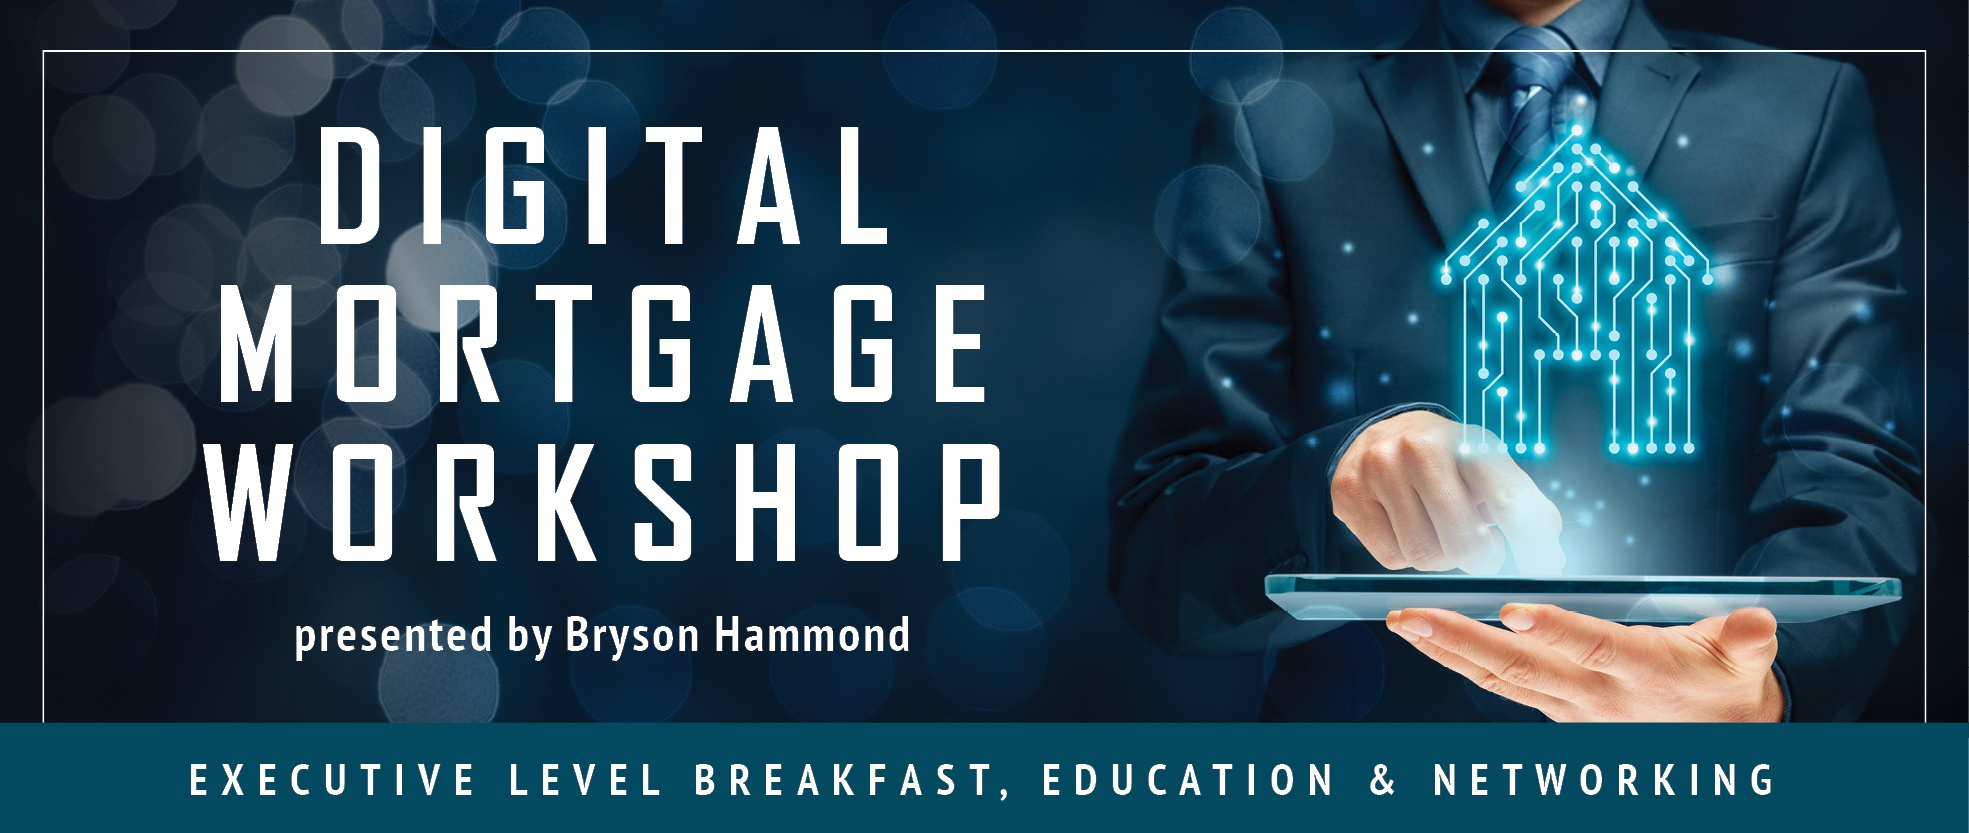 Digital Mortgage Workshop